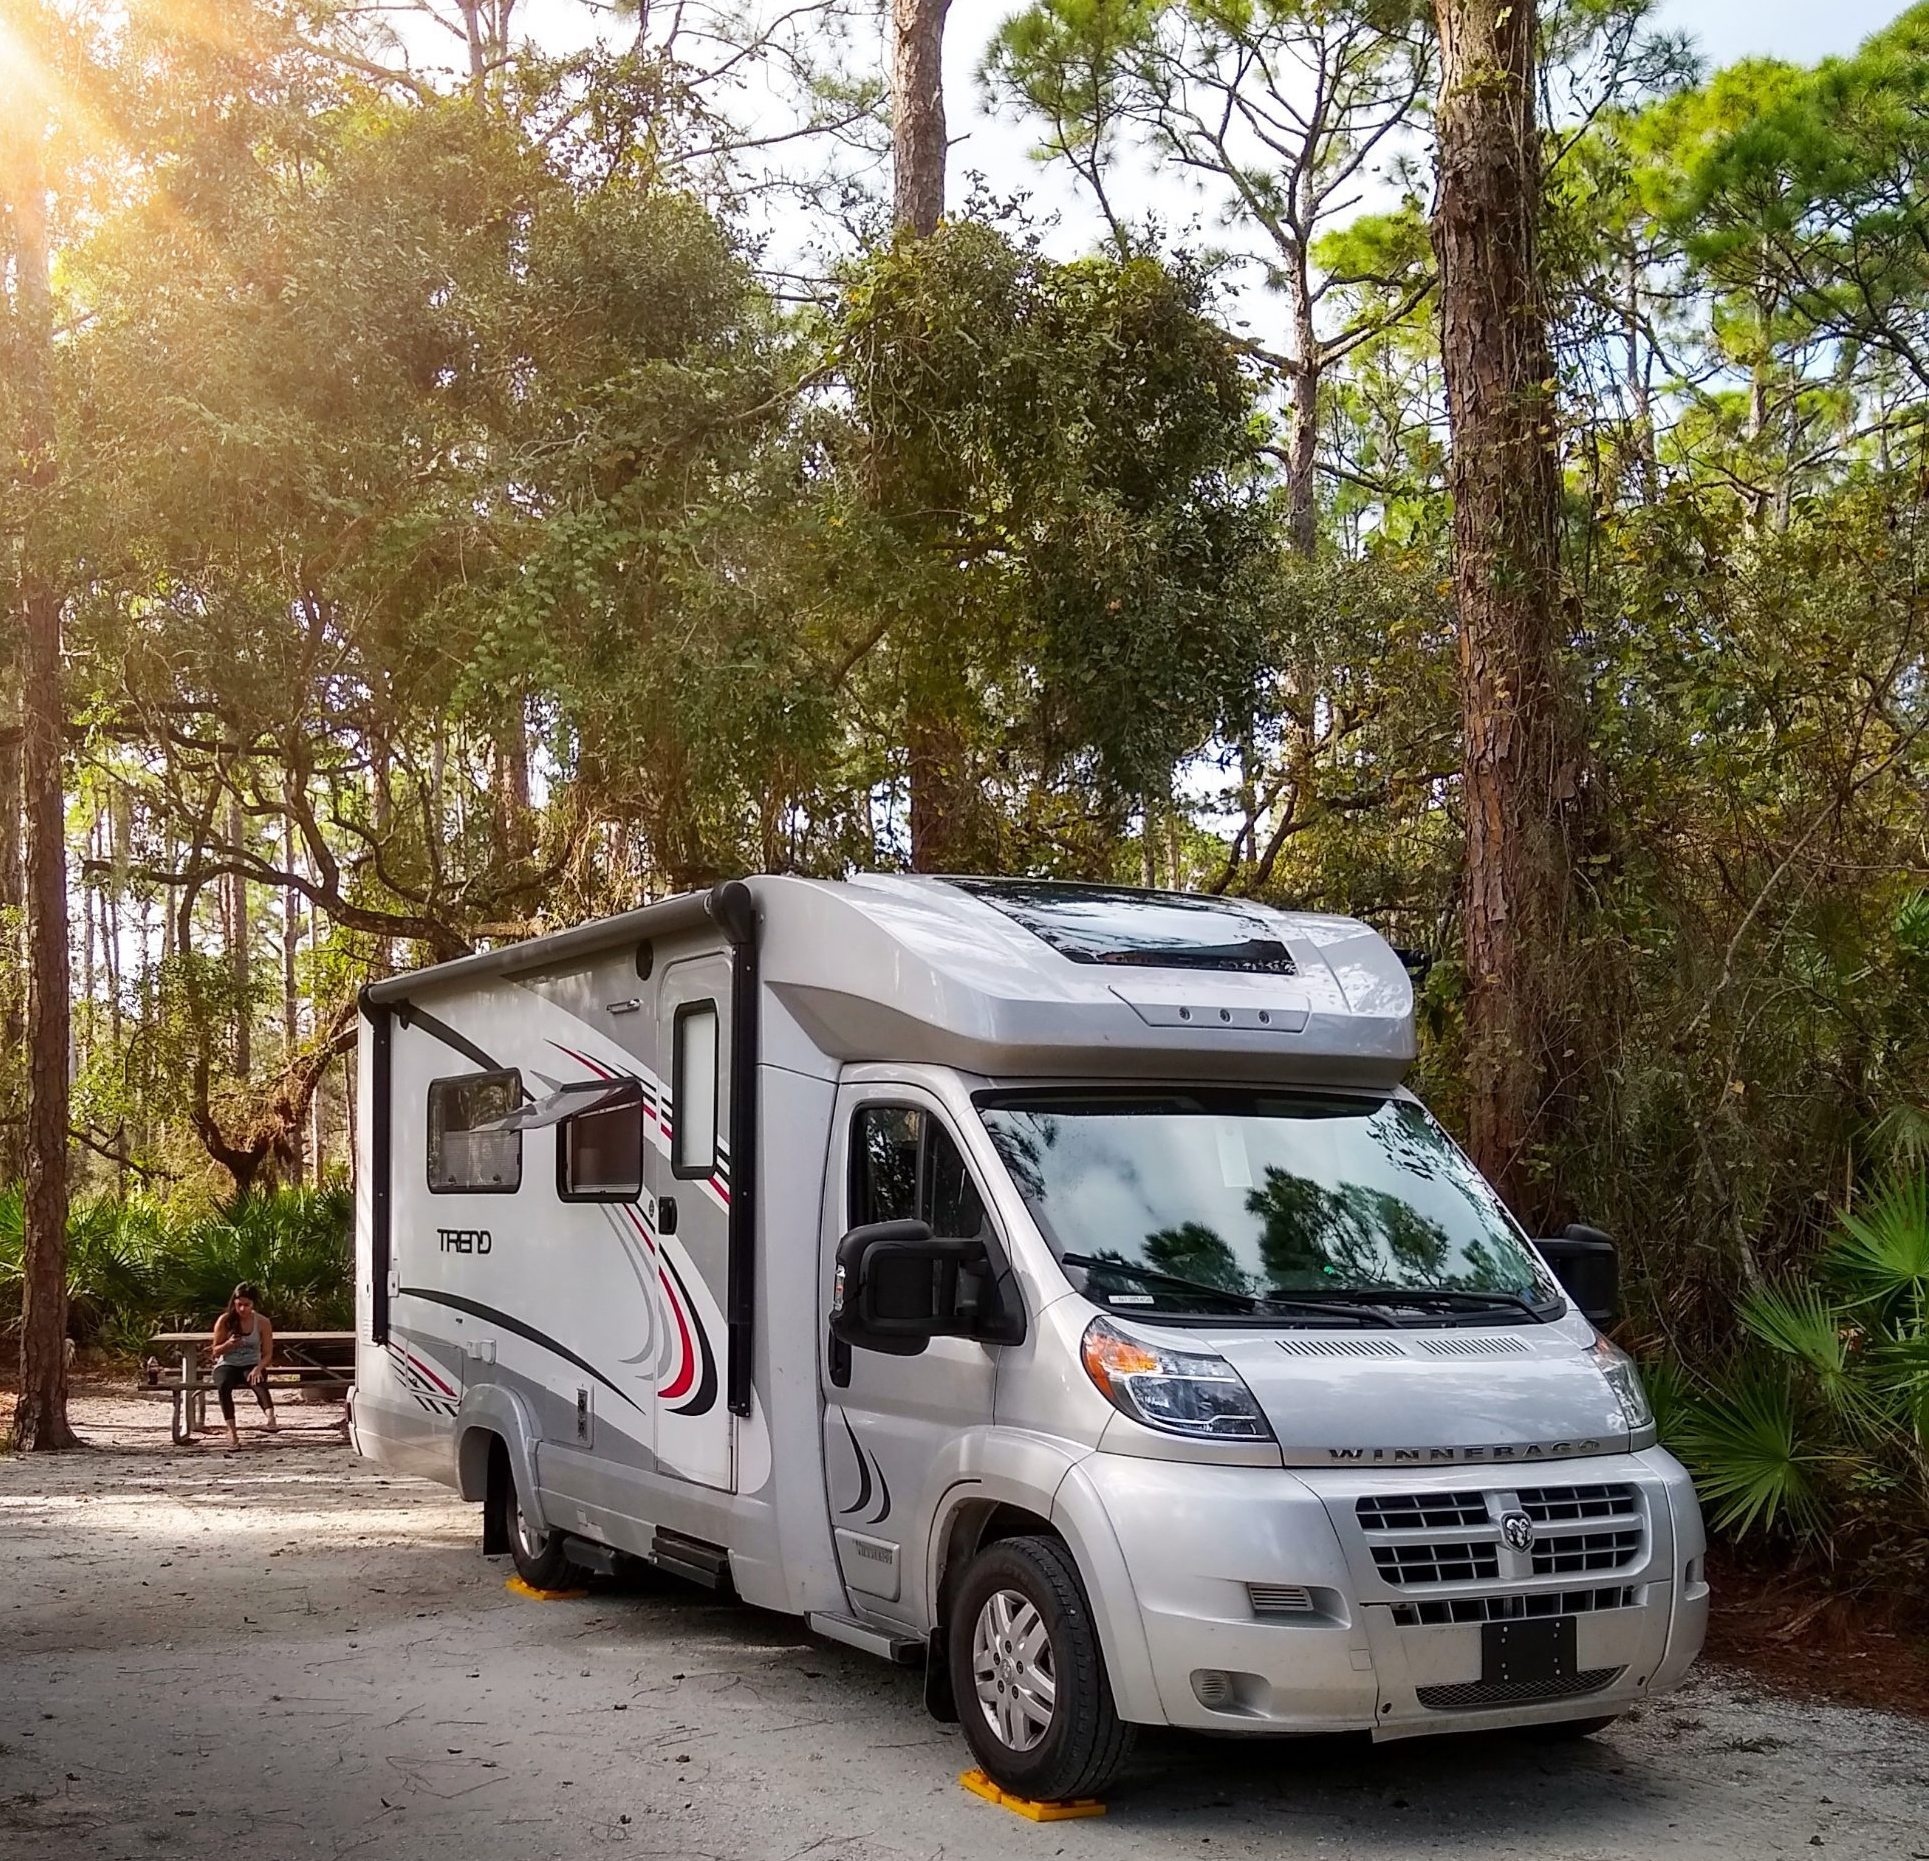 At 24 feet in length, our little Class C fits almost anywhere. This is at one of our favorite campgrounds in Florida.